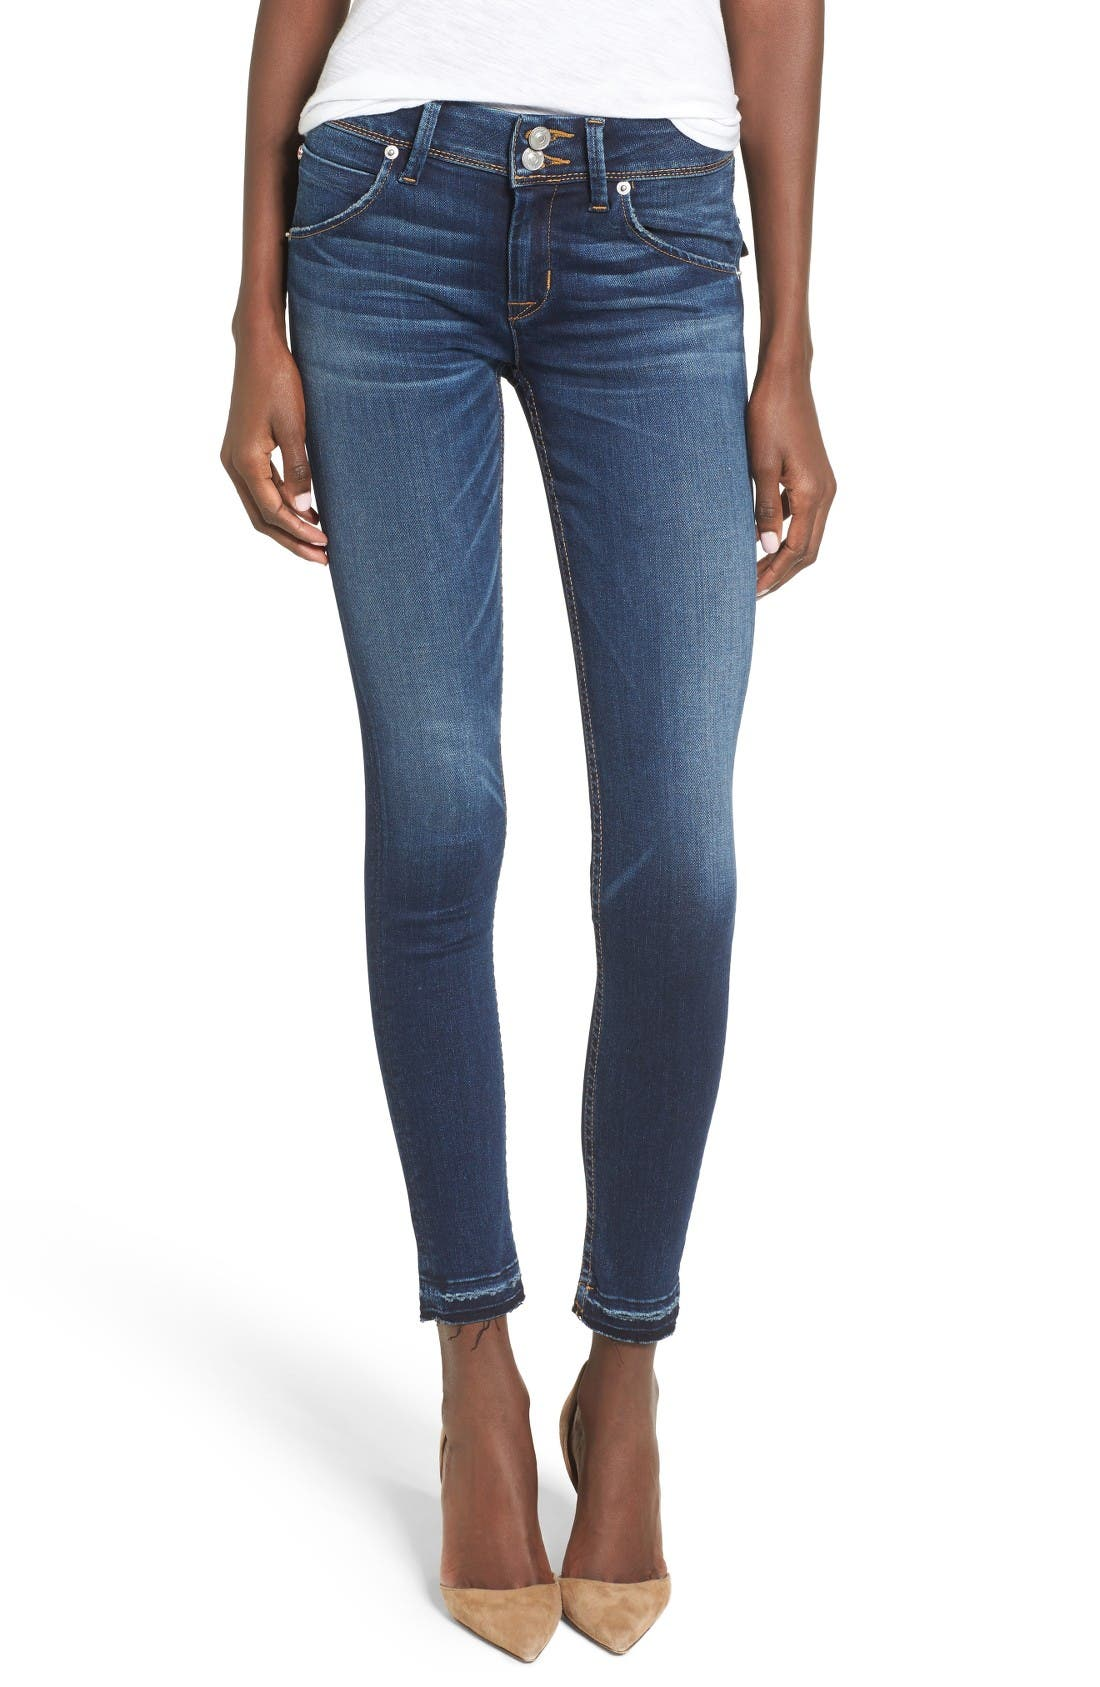 Alternate Image 1 Selected - Hudson Jeans Collin Skinny Jeans (Pin Point)